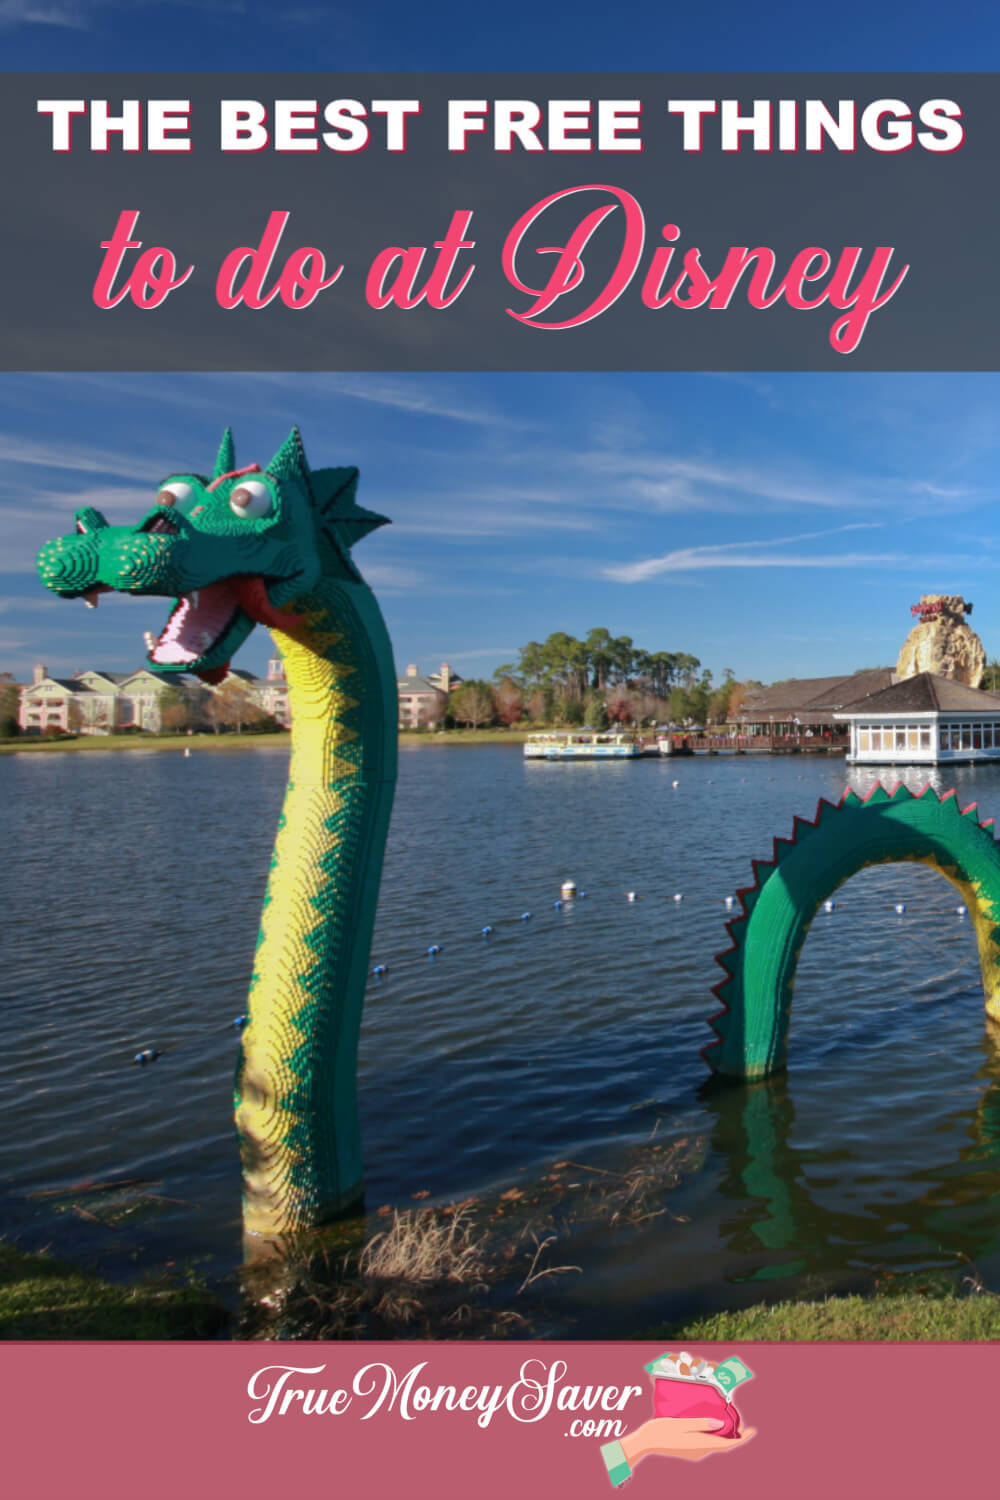 There\'s so much to do near the Disney Parks that you don\'t need to spend extra money to have fun! Heck, you don\'t even have to go TO the parks! Use this guide to plan your FREE Disney Fun! #truemoneysaver #savingmoney #disneyworld #disneyfun #disney